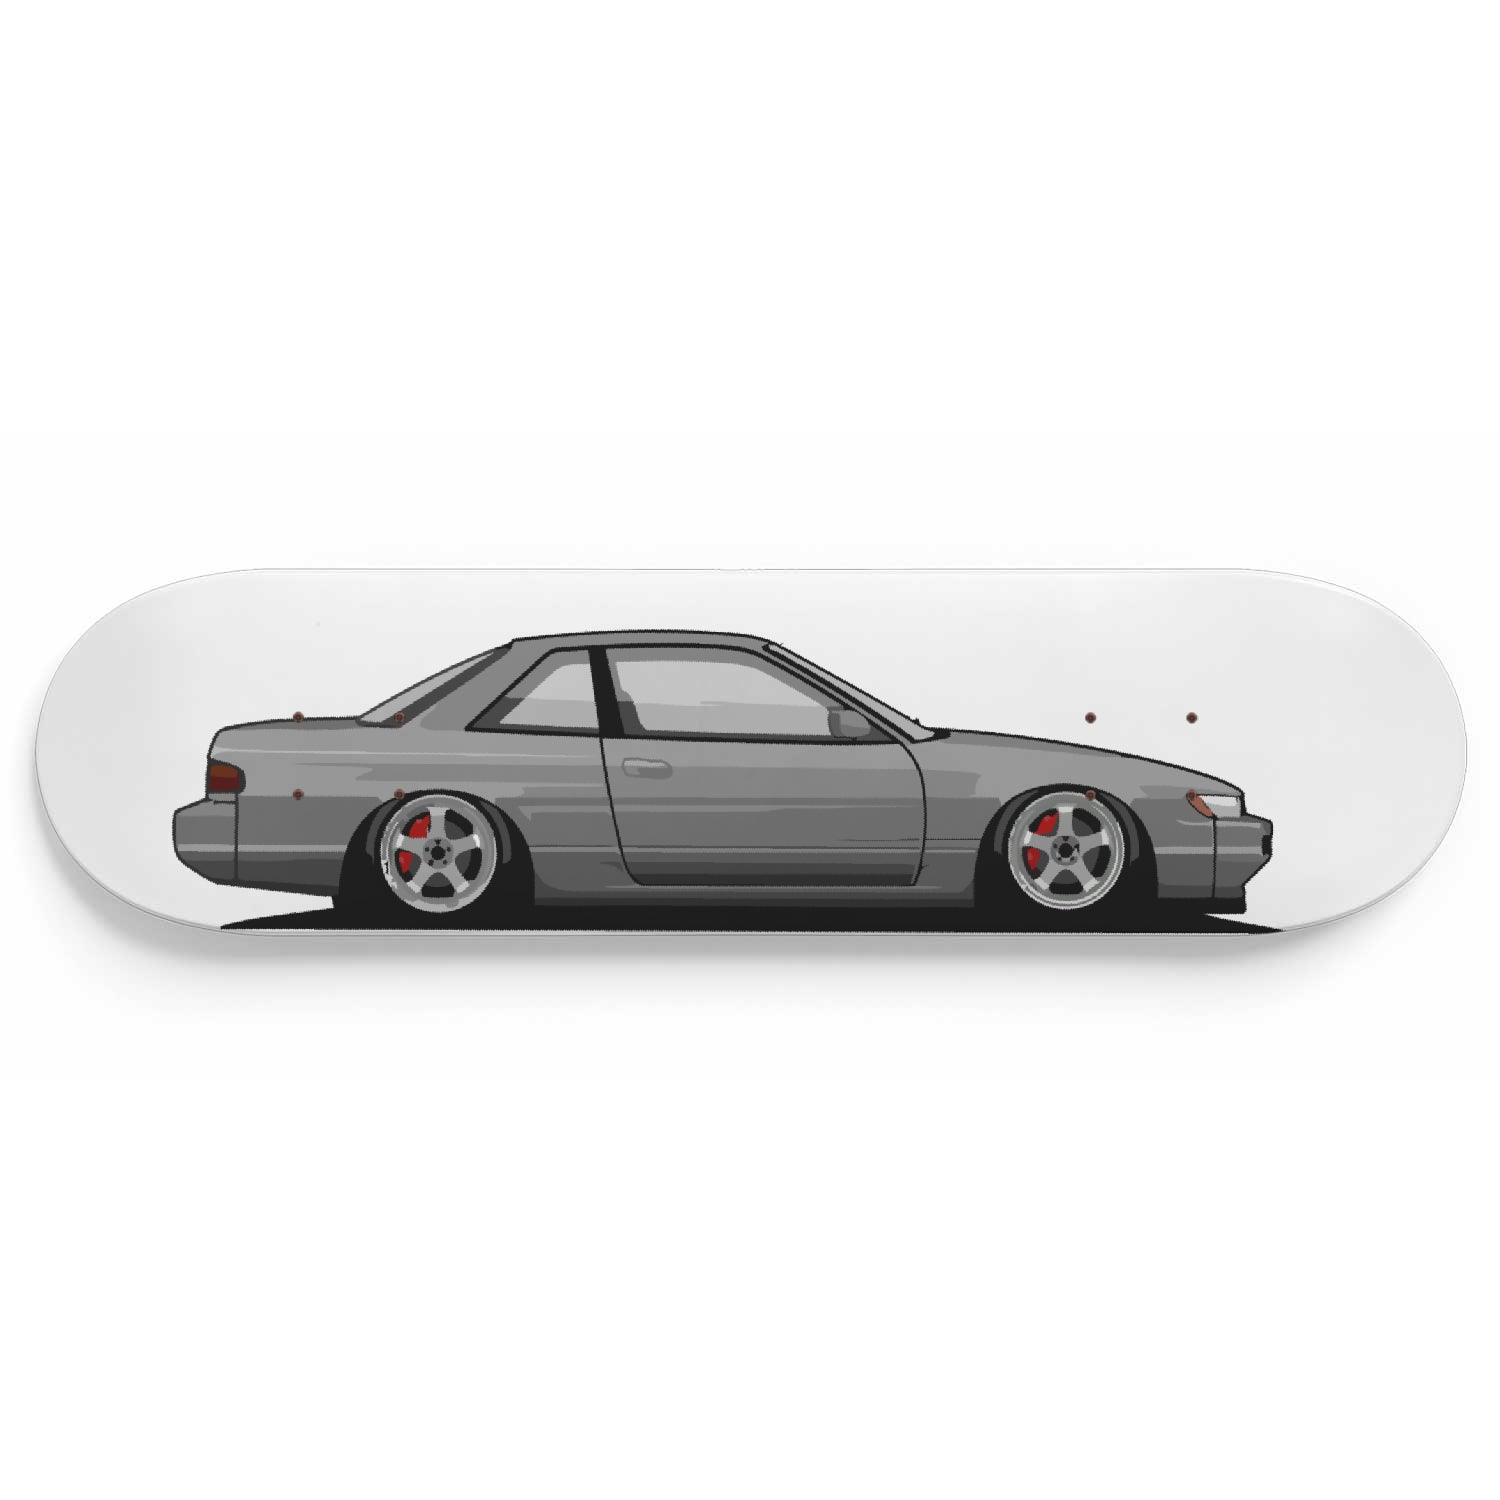 S13 Skateboard Wall Art